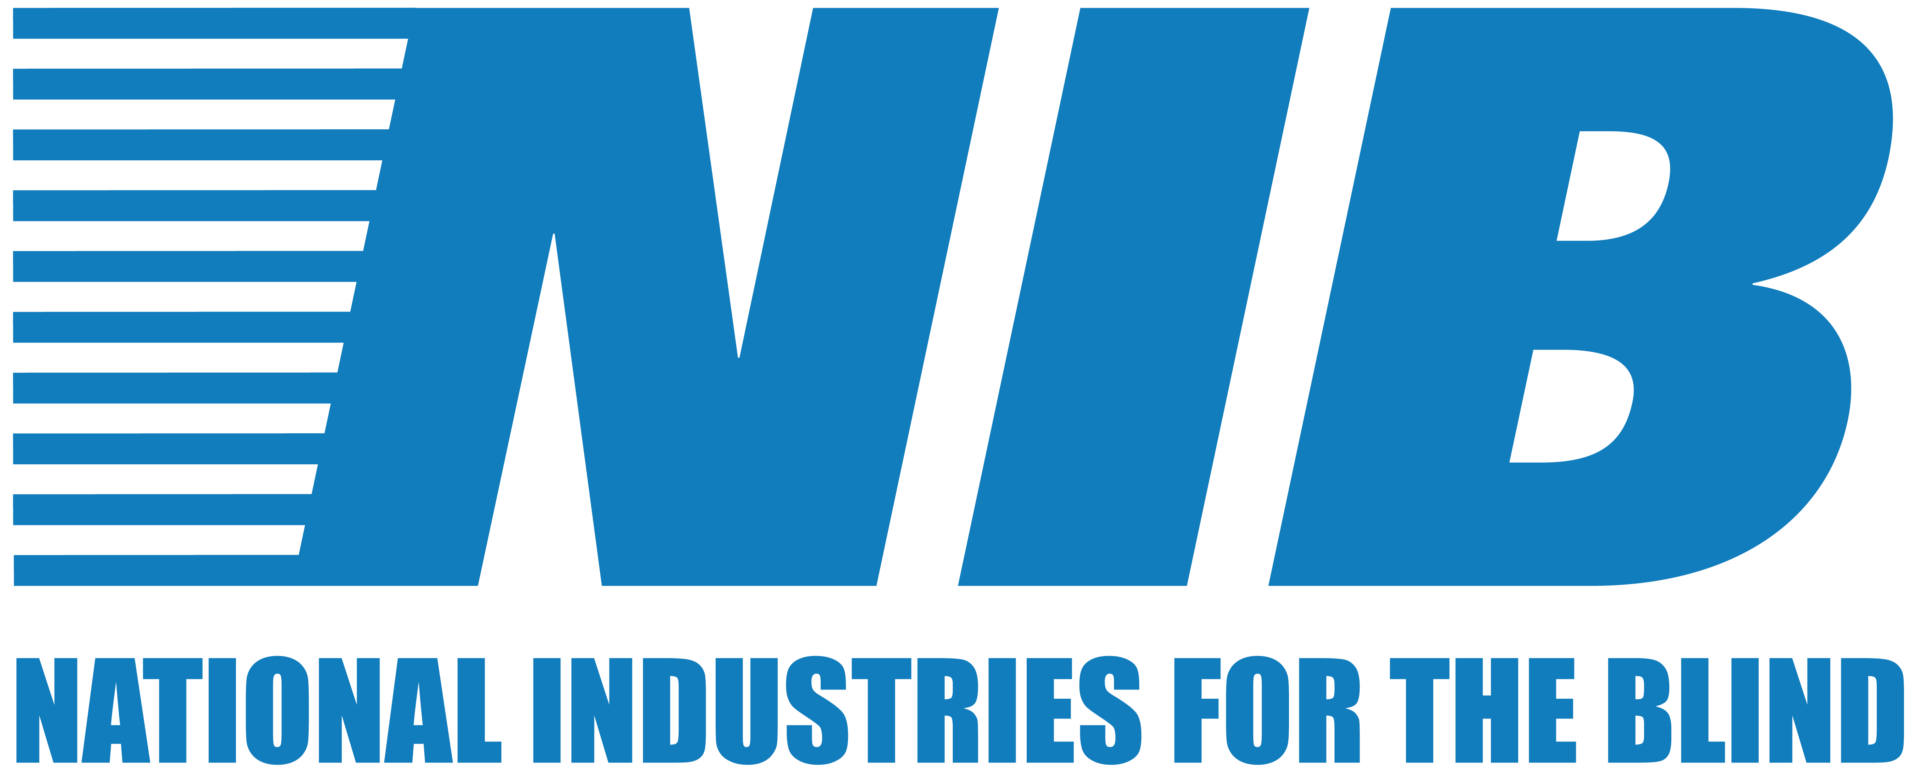 Nataional Industries for the Blind logo